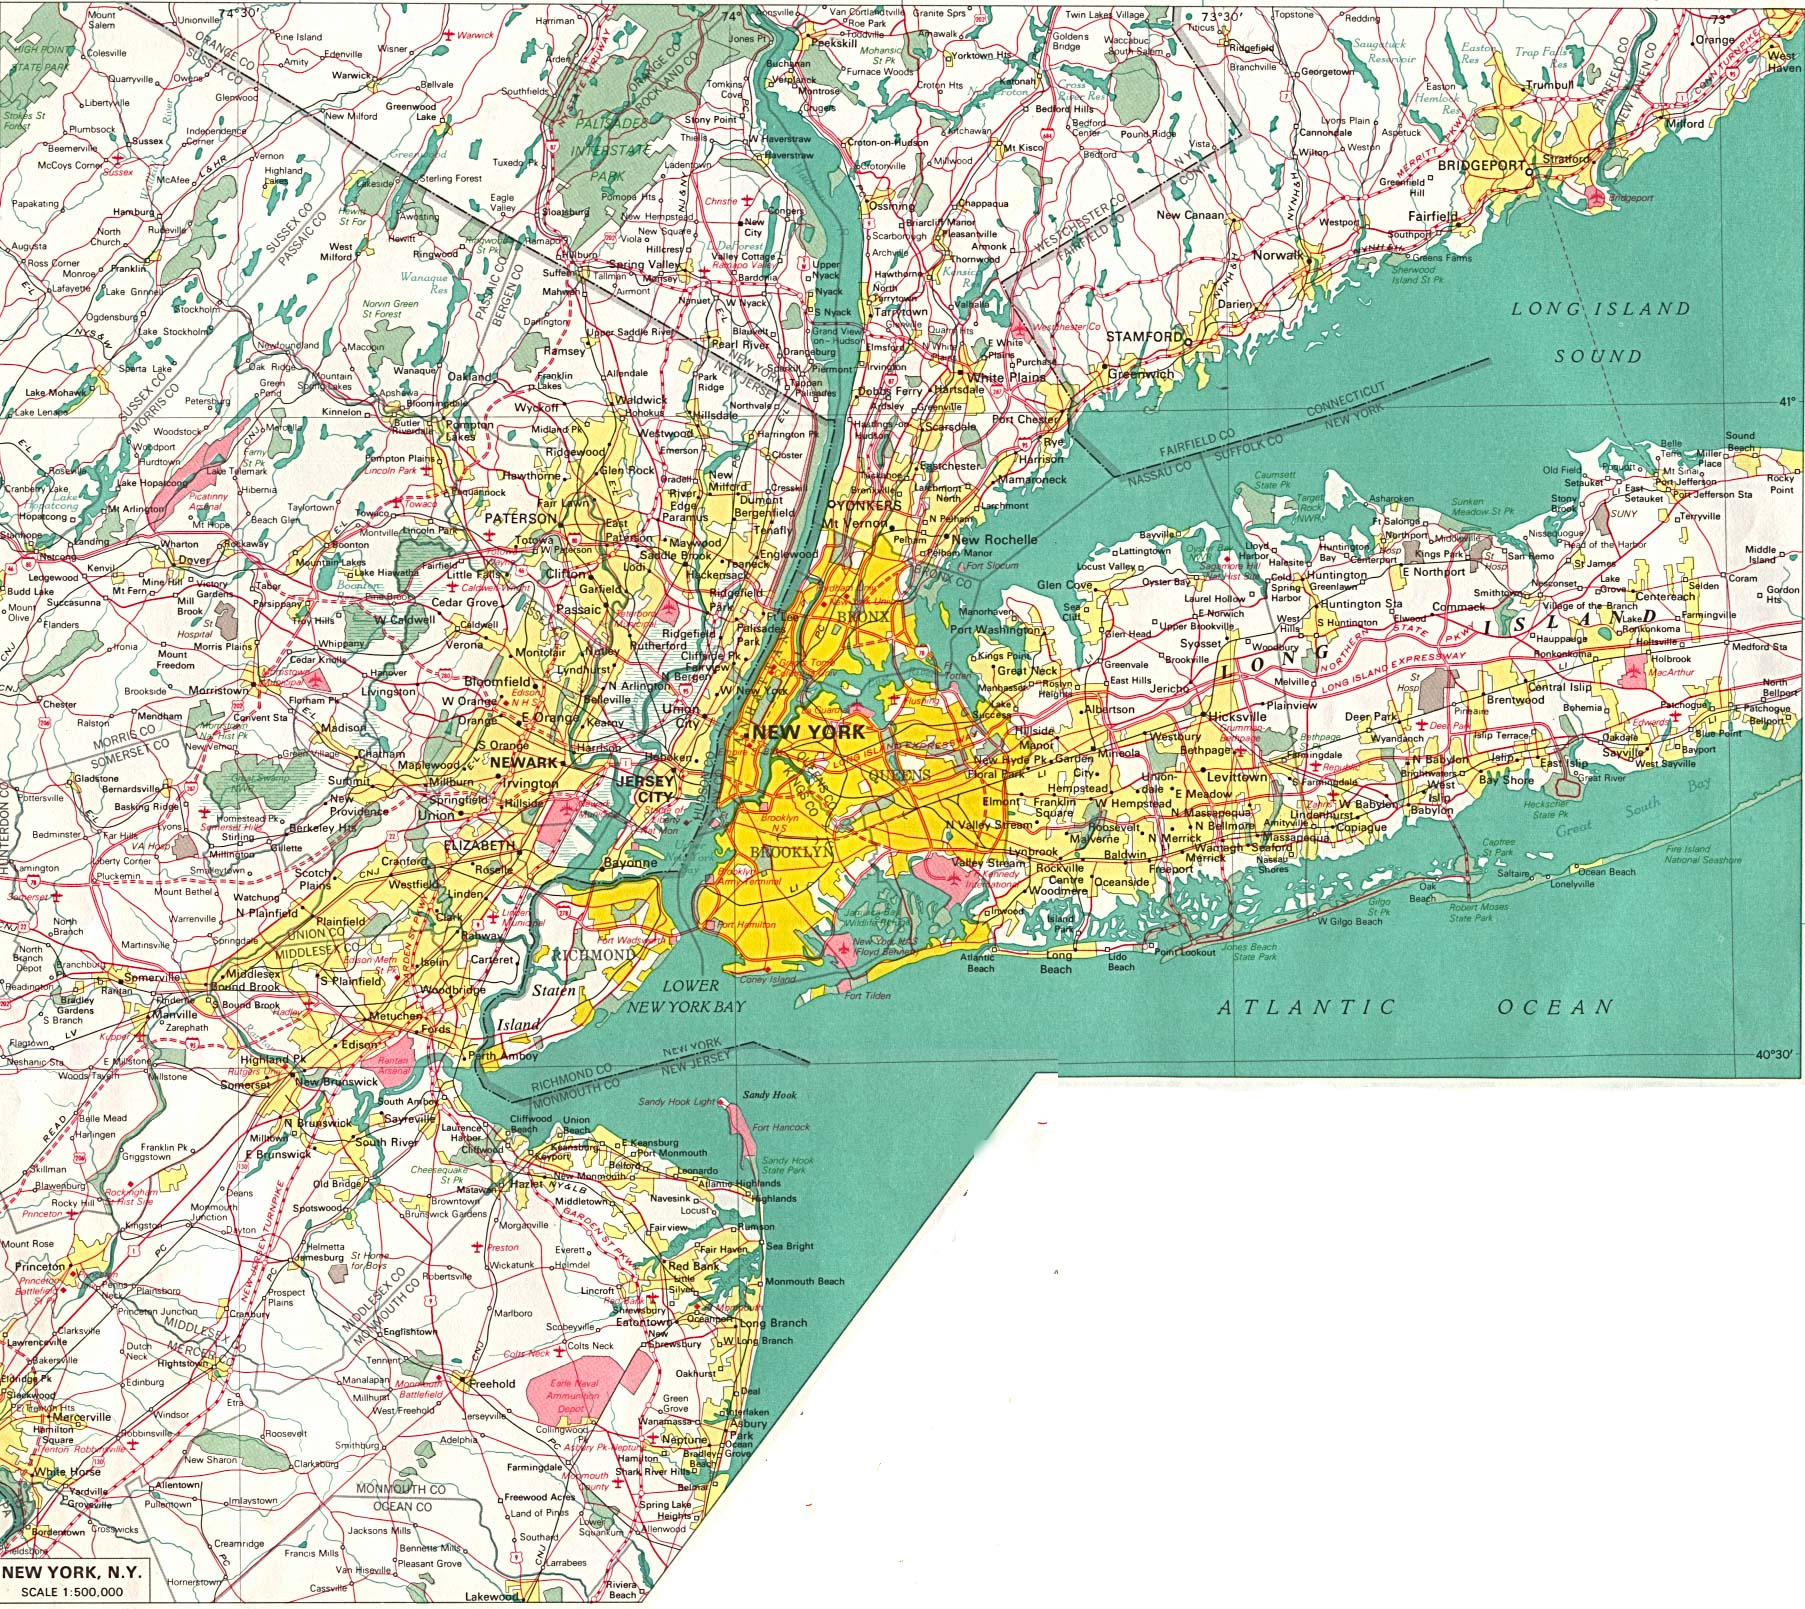 New York City Area Map New York Maps   Perry Castañeda Map Collection   UT Library Online New York City Area Map